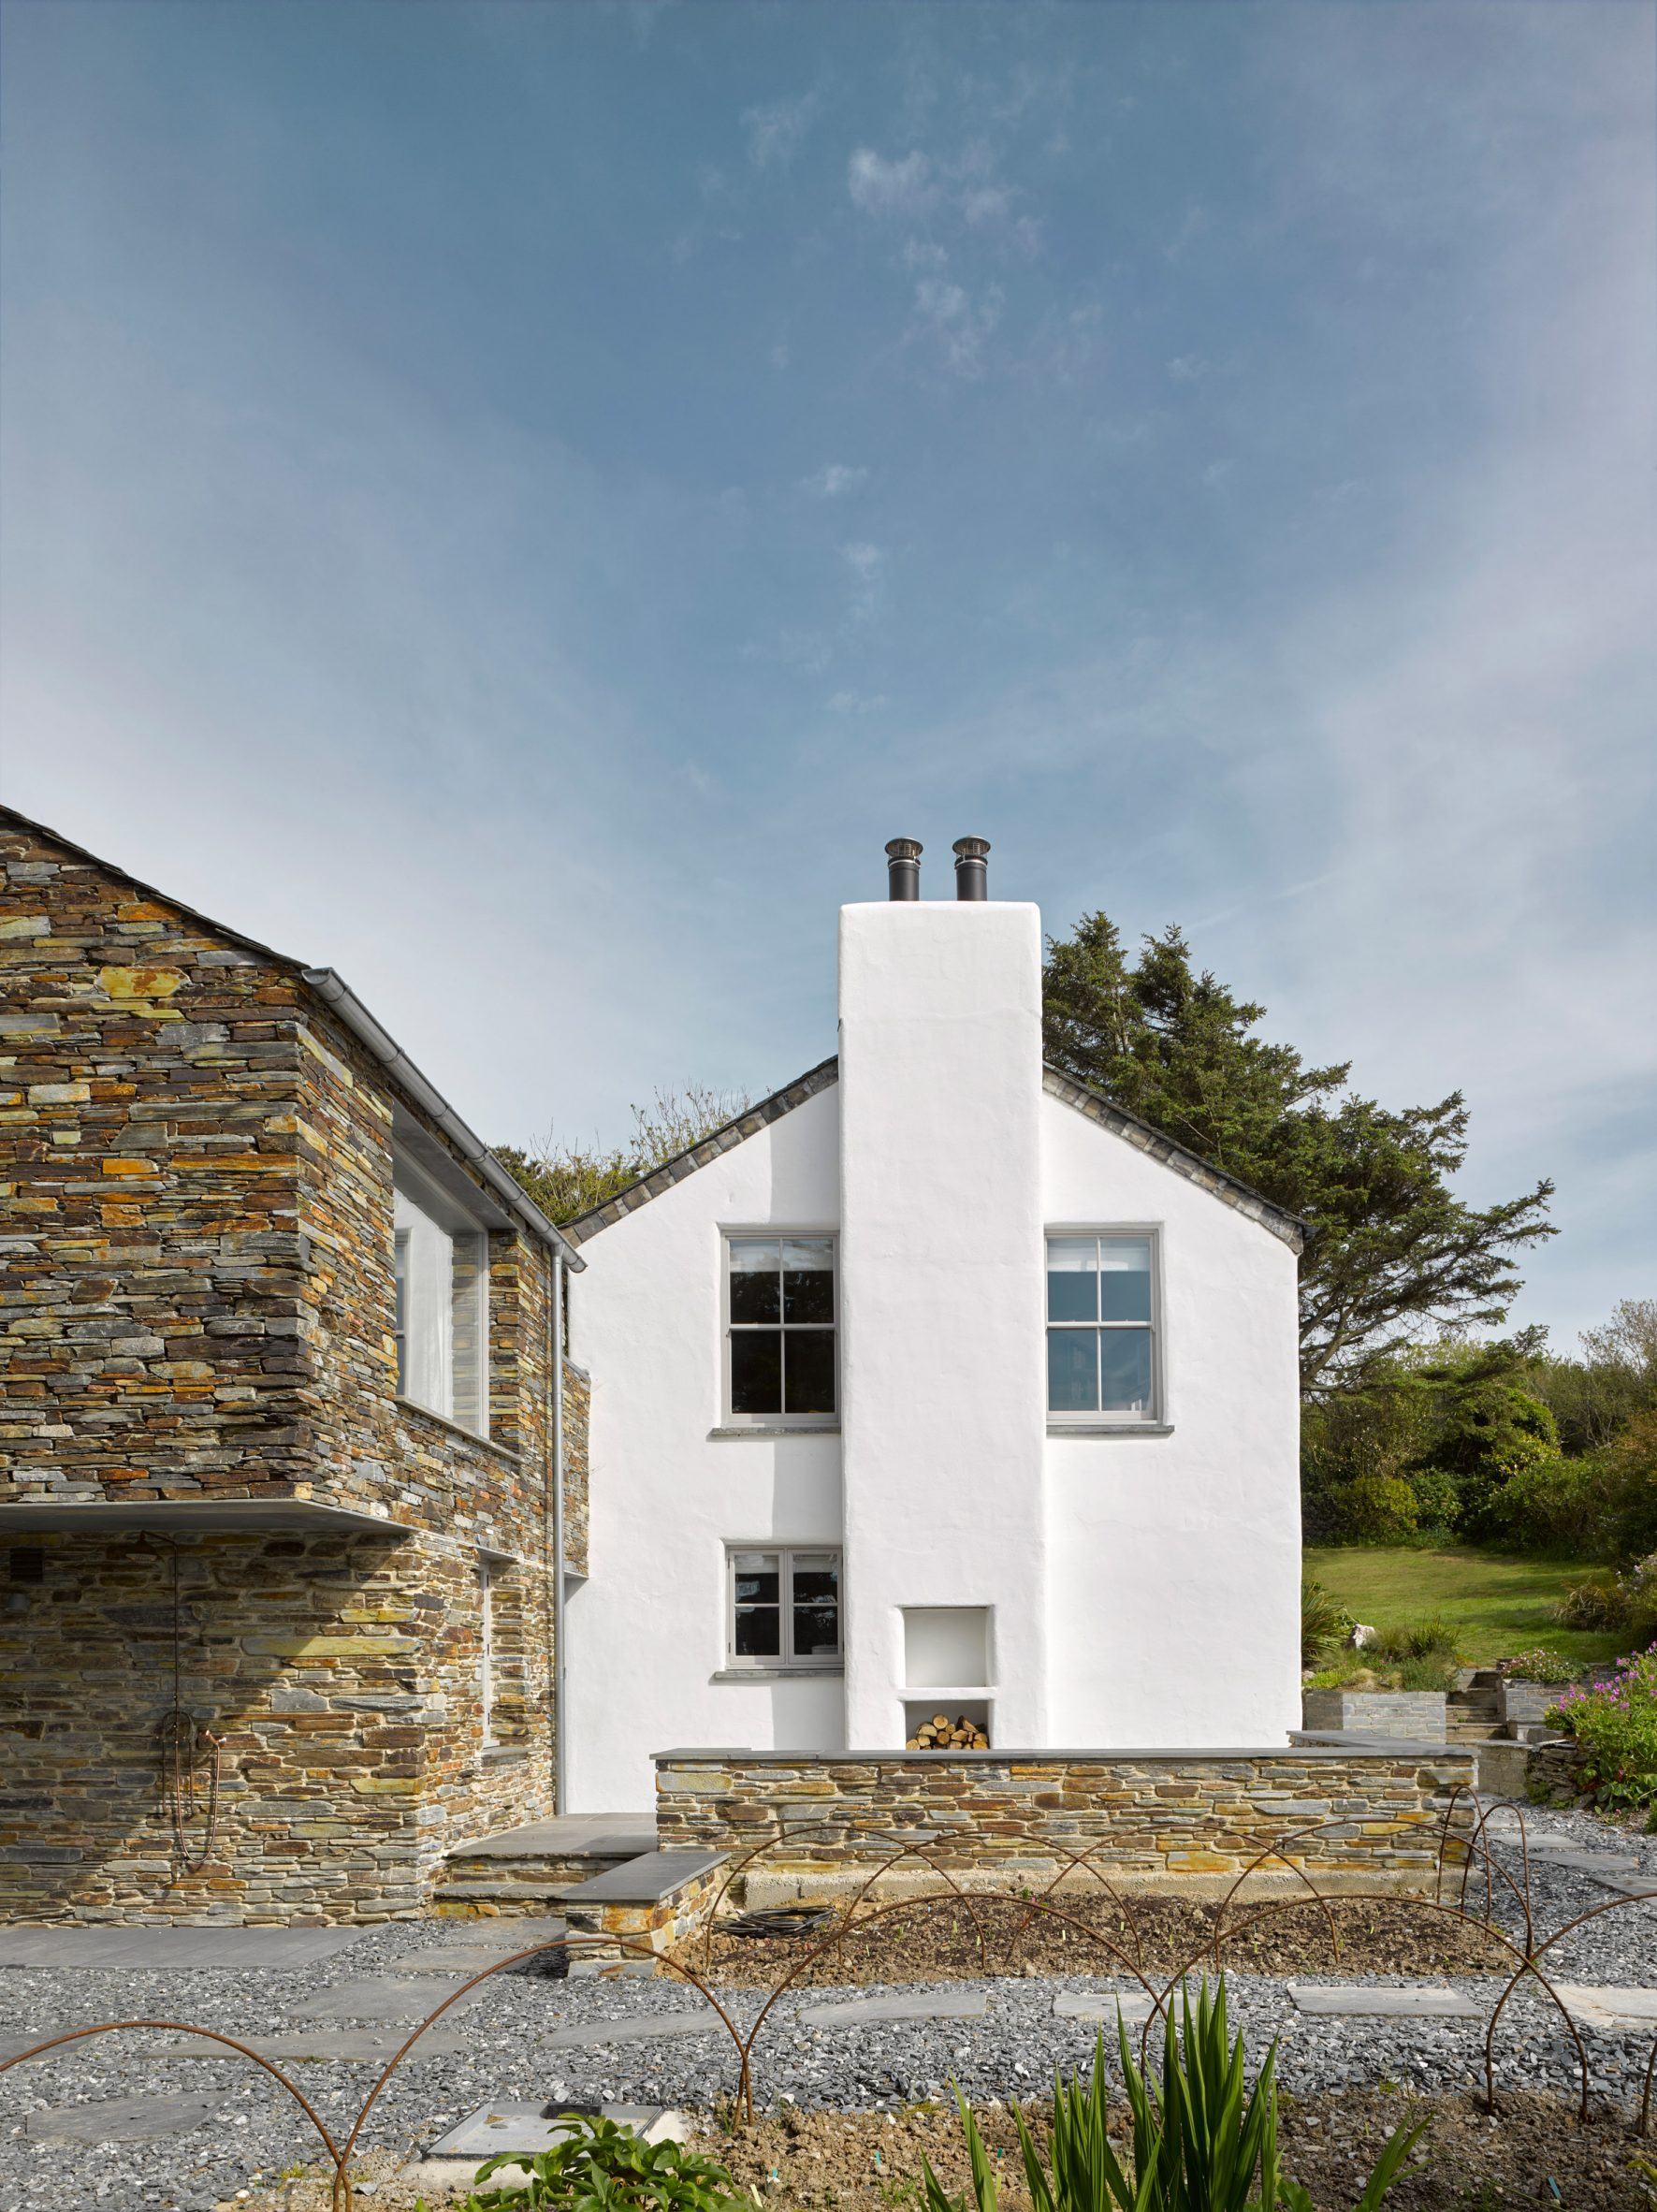 A white house with a stone extension